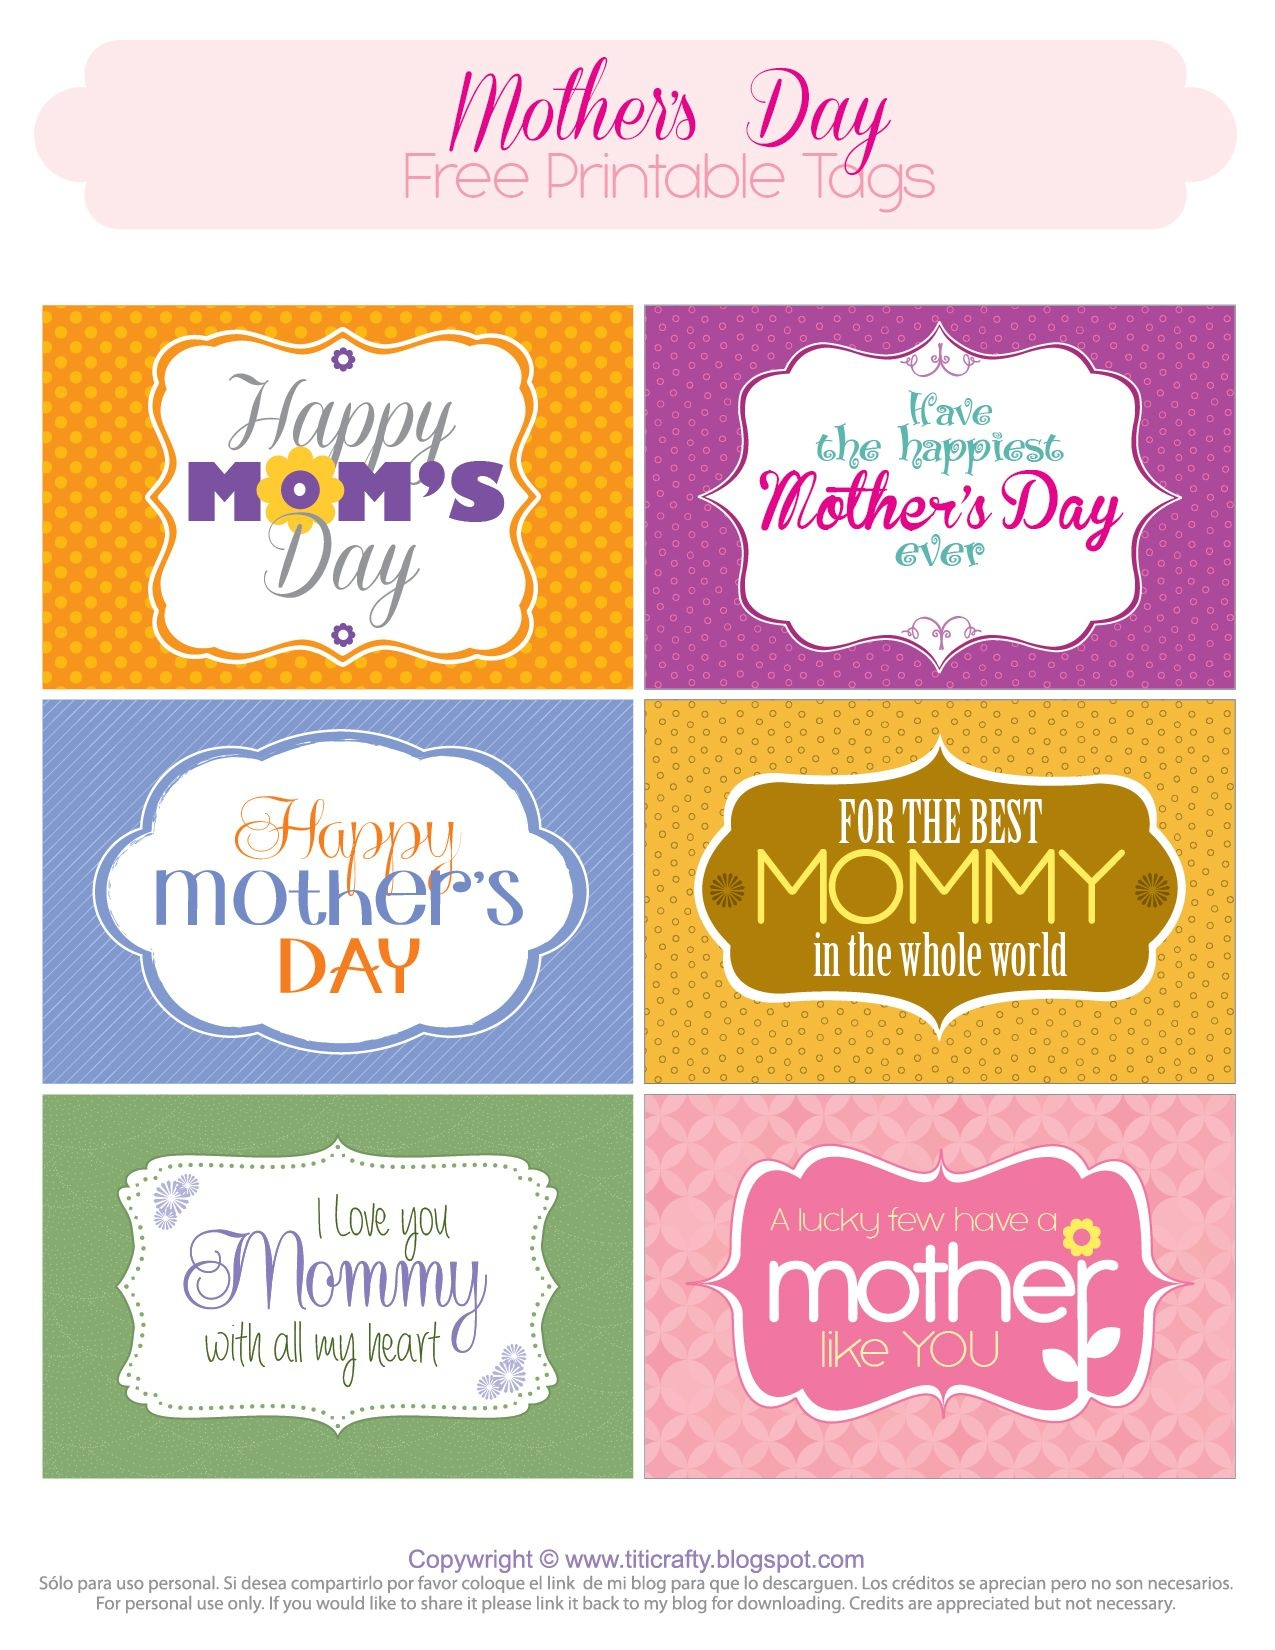 Mother's Day Free Printable Tags   *{Tcn} Freebies   Mothers Day - Free Printable Mother's Day Games For Adults